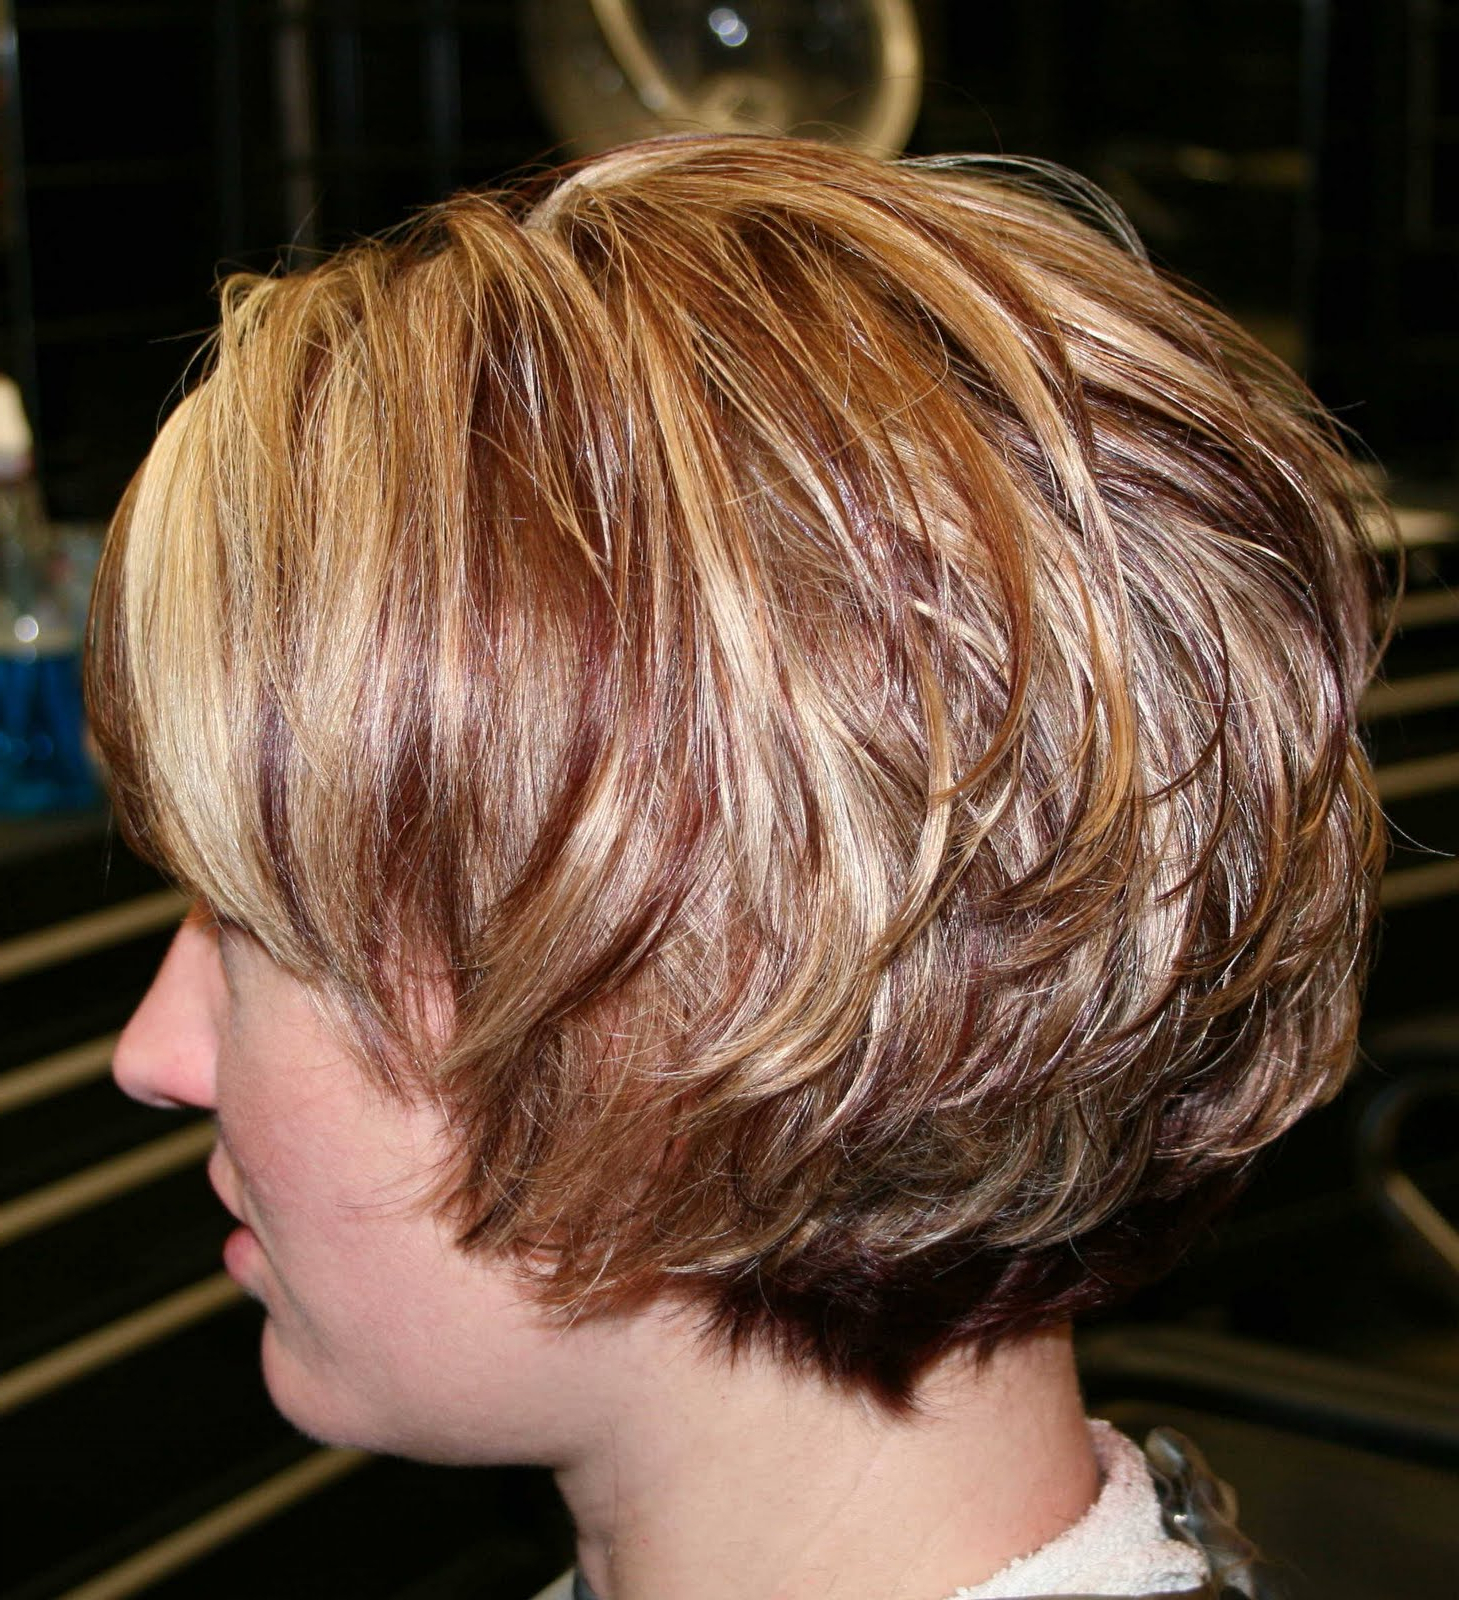 Short Curly Stacked Bob – Hairstyle For Women & Man In Stacked Curly Bob Hairstyles (View 11 of 25)